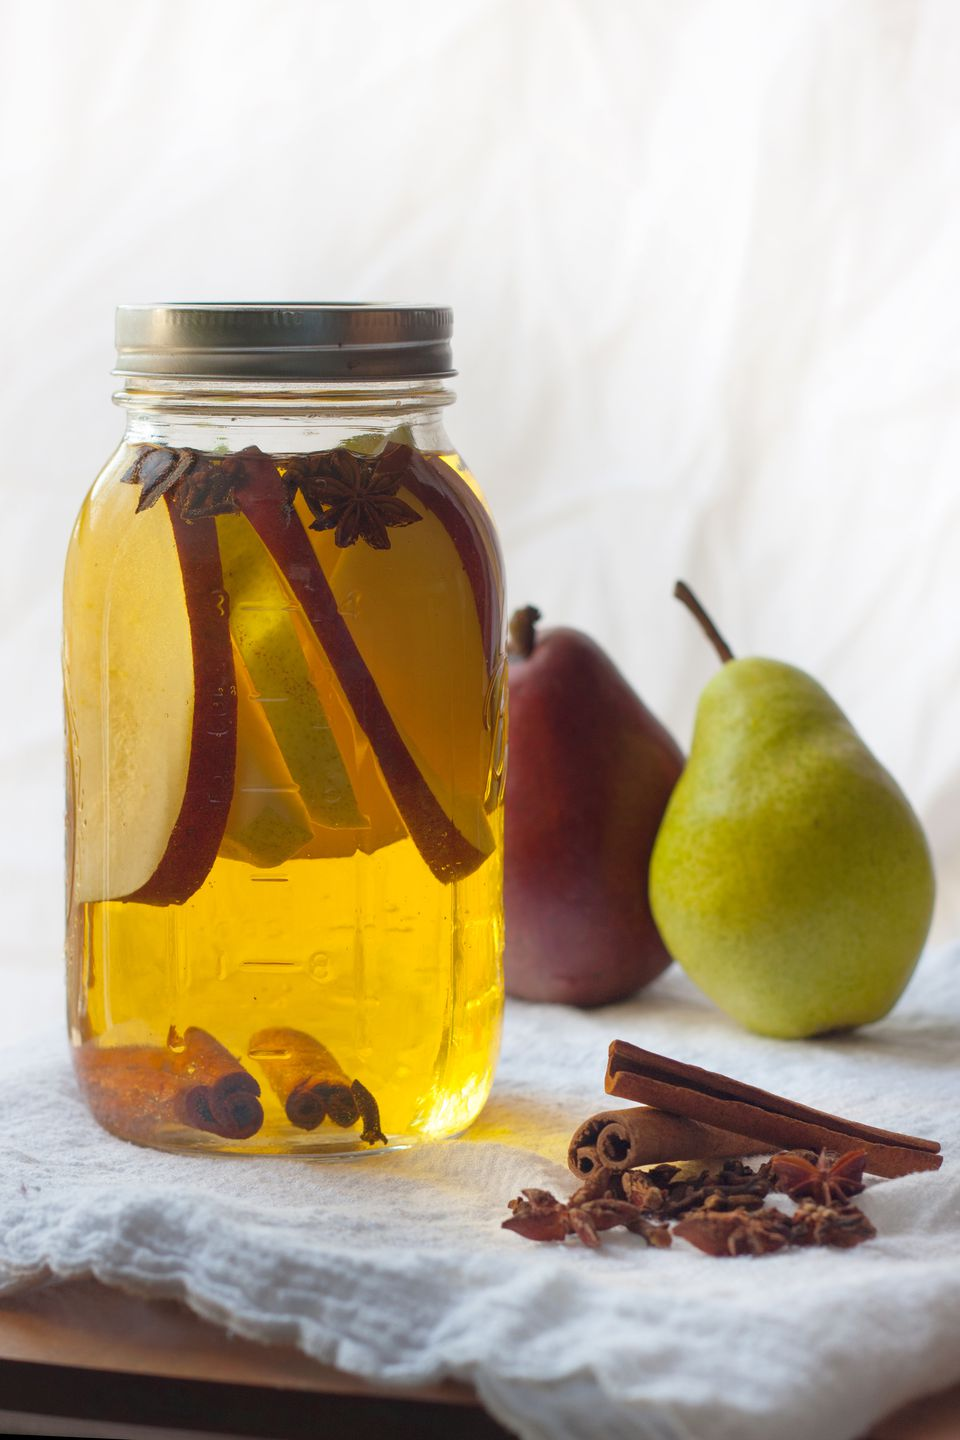 Homemade Spiced Pear Liqueur